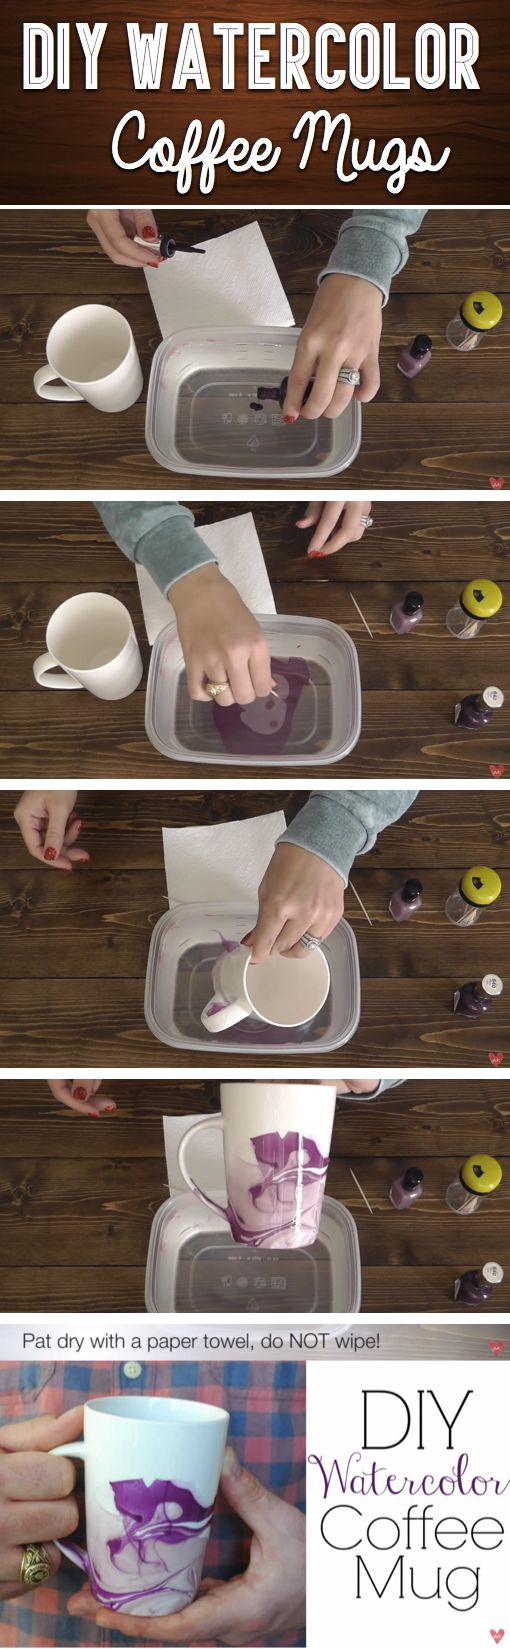 You Will Be Amazed To See What You Can Achieve With A Plain Coffee Cup And Some Nail Polish! - She Turned A Plain Mug, Nail Polish And A Toothpick Into Something Amazing! #Pinterestnight2016